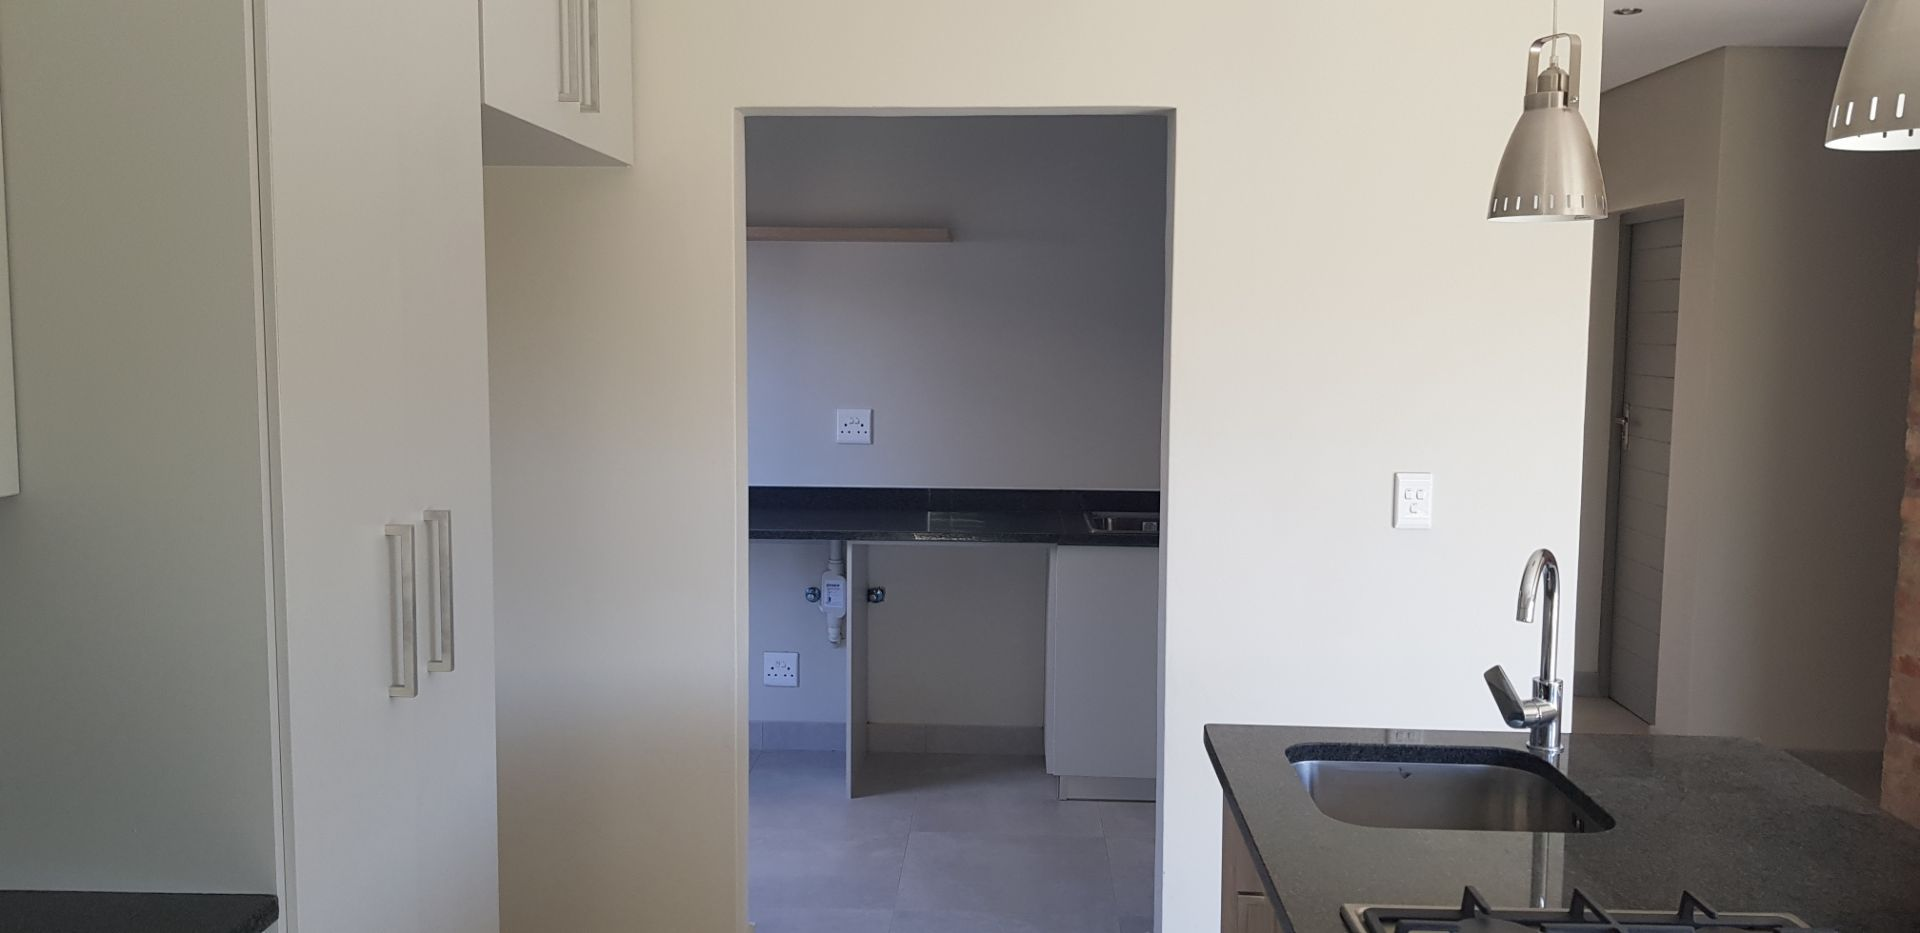 House in Lifestyle Estate - 20190712_111257.jpg